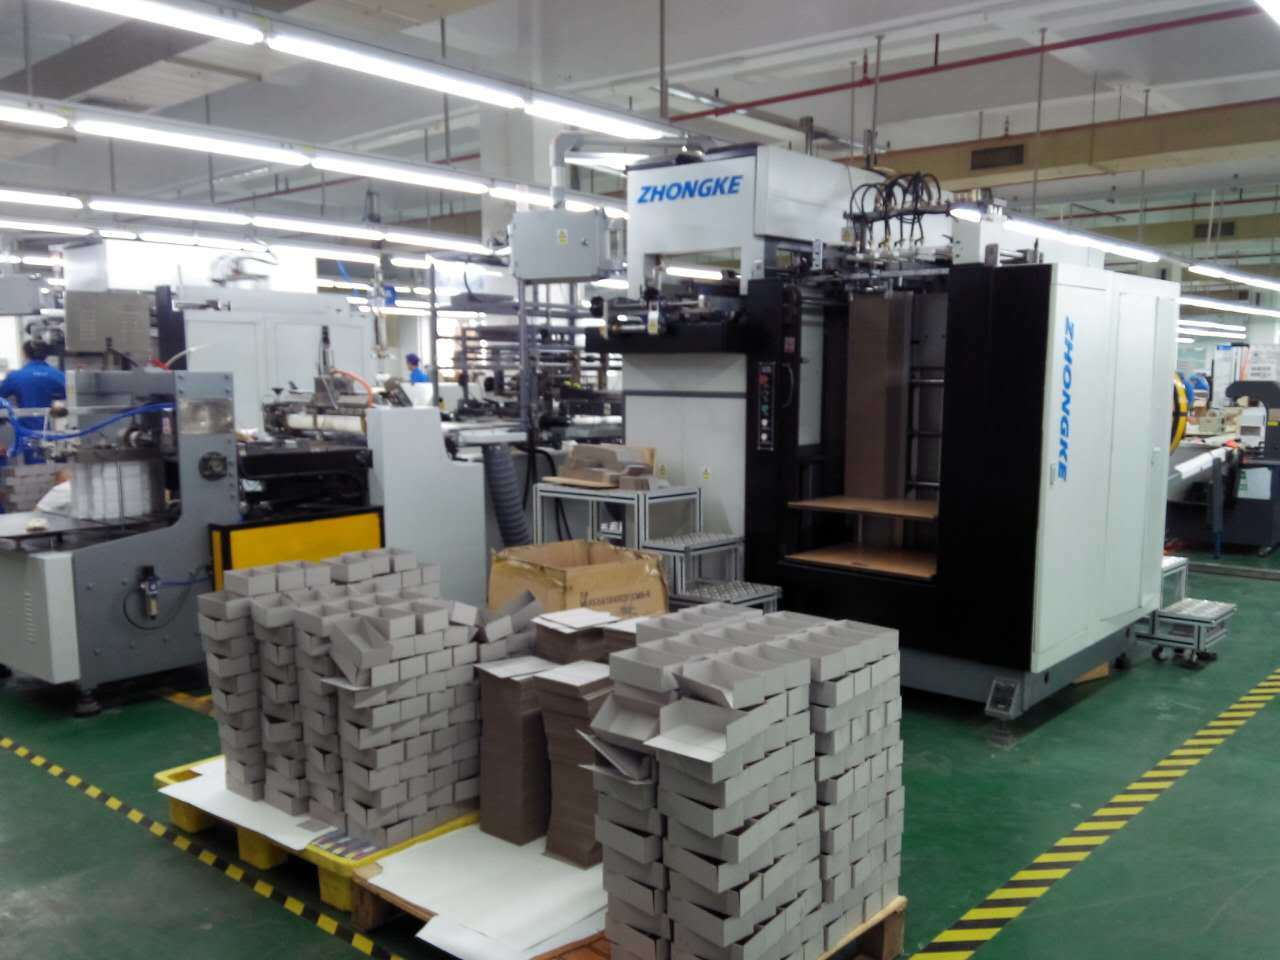 Zk-660anp Self-Developed Rigid Box Making Machine (approved CE)